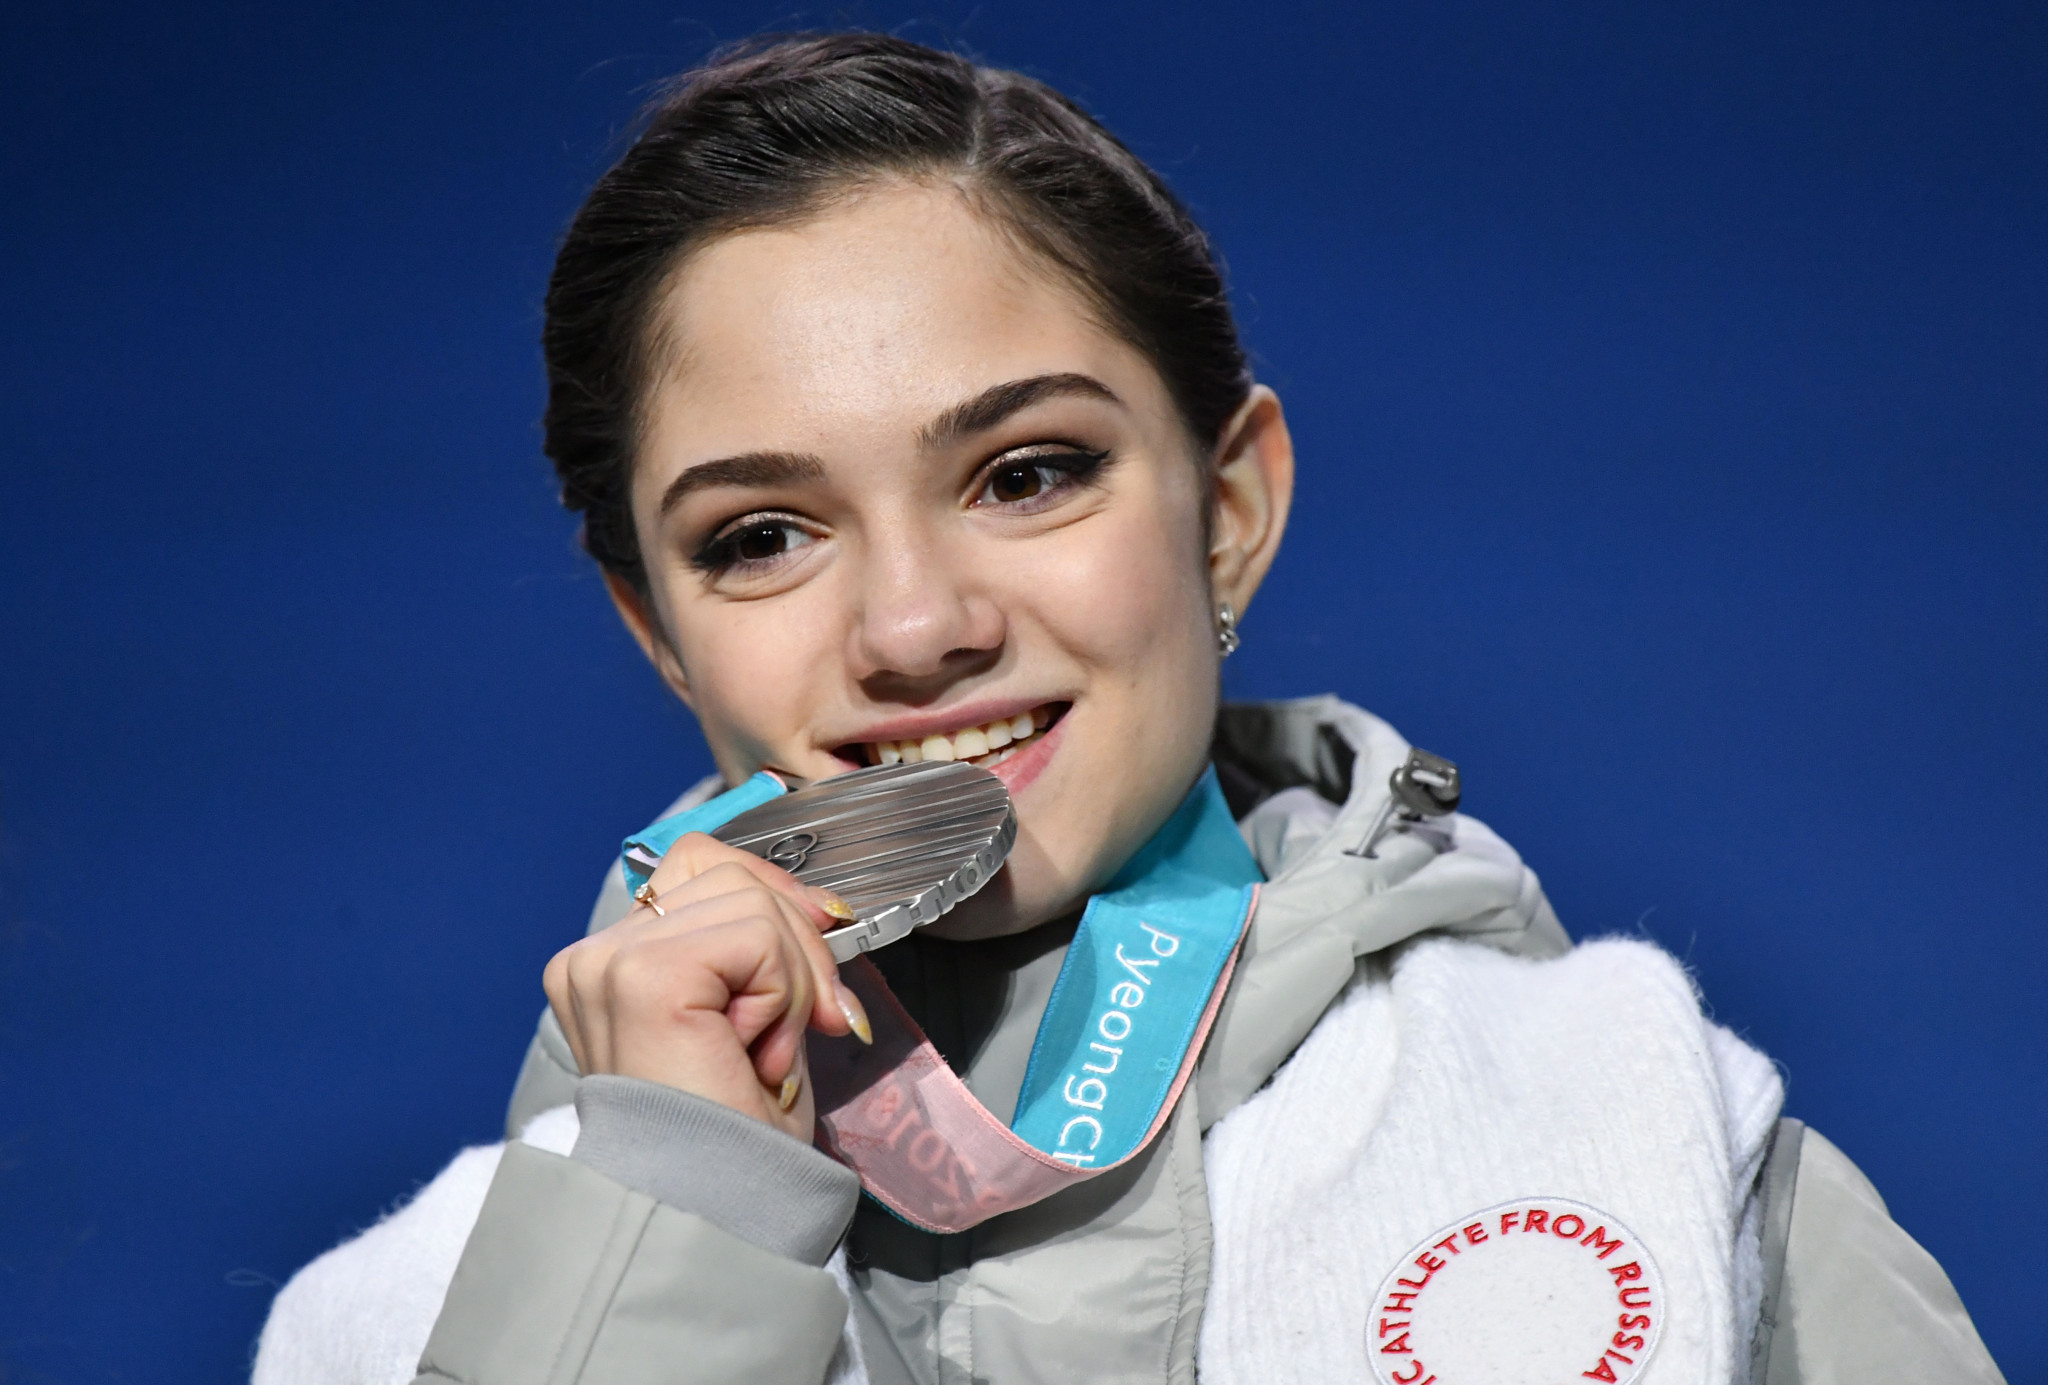 Russia's Olympic skating silver medallist Evgenia Medvedeva appeared at the IOC Executive Board meeting to appeal for her country to be allowed to march under its own flag at the Closing Ceremony of Pyeongchang 2018 ©Getty Images